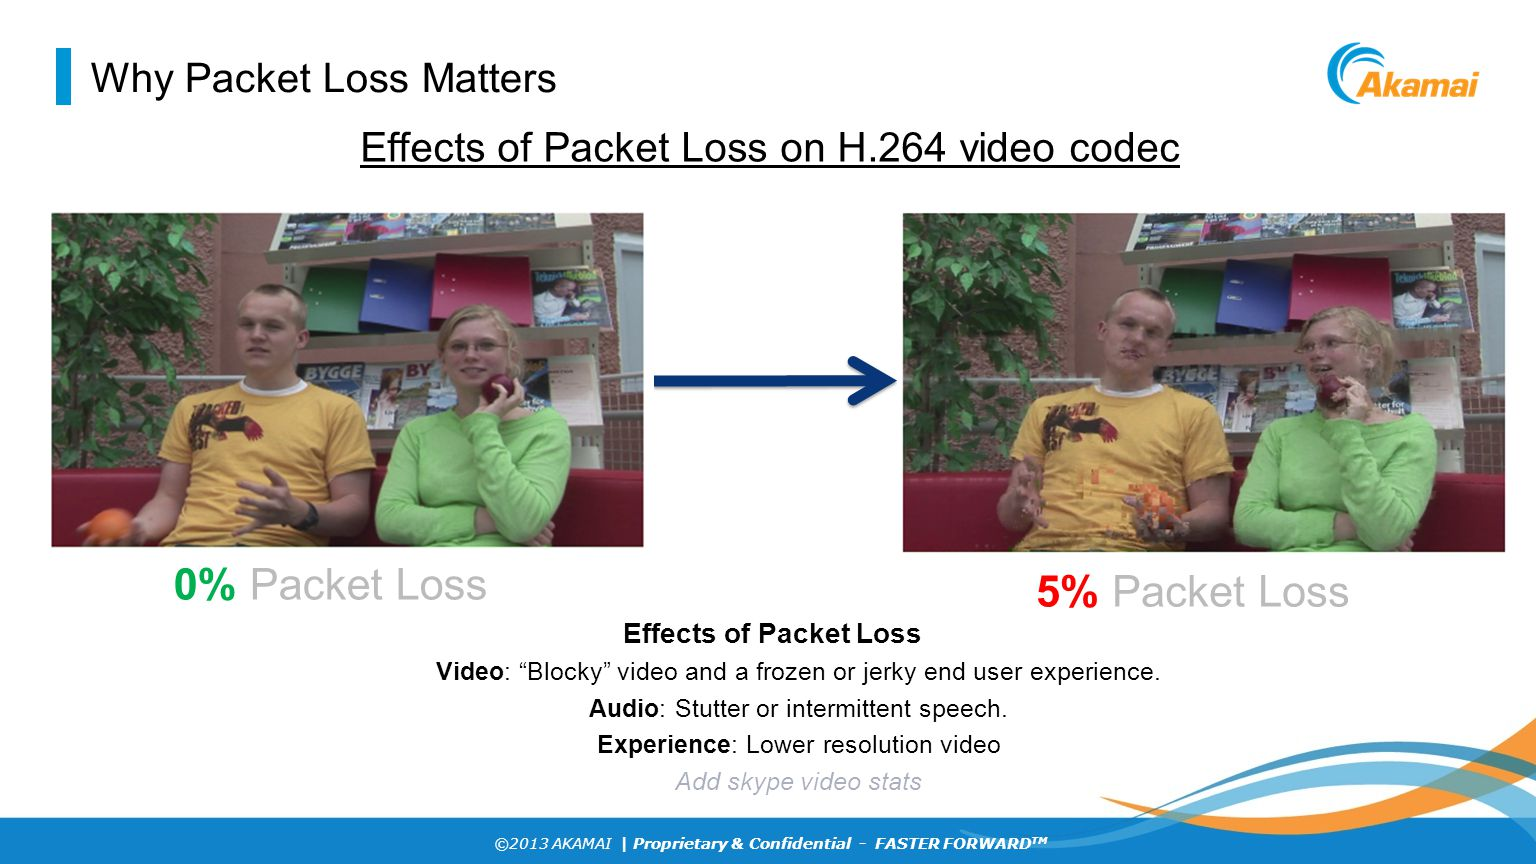 ©2013 AKAMAI | Proprietary & Confidential - FASTER FORWARD TM Why Packet Loss Matters 5% Packet Loss Effects of Packet Loss on H.264 video codec 0% Pa